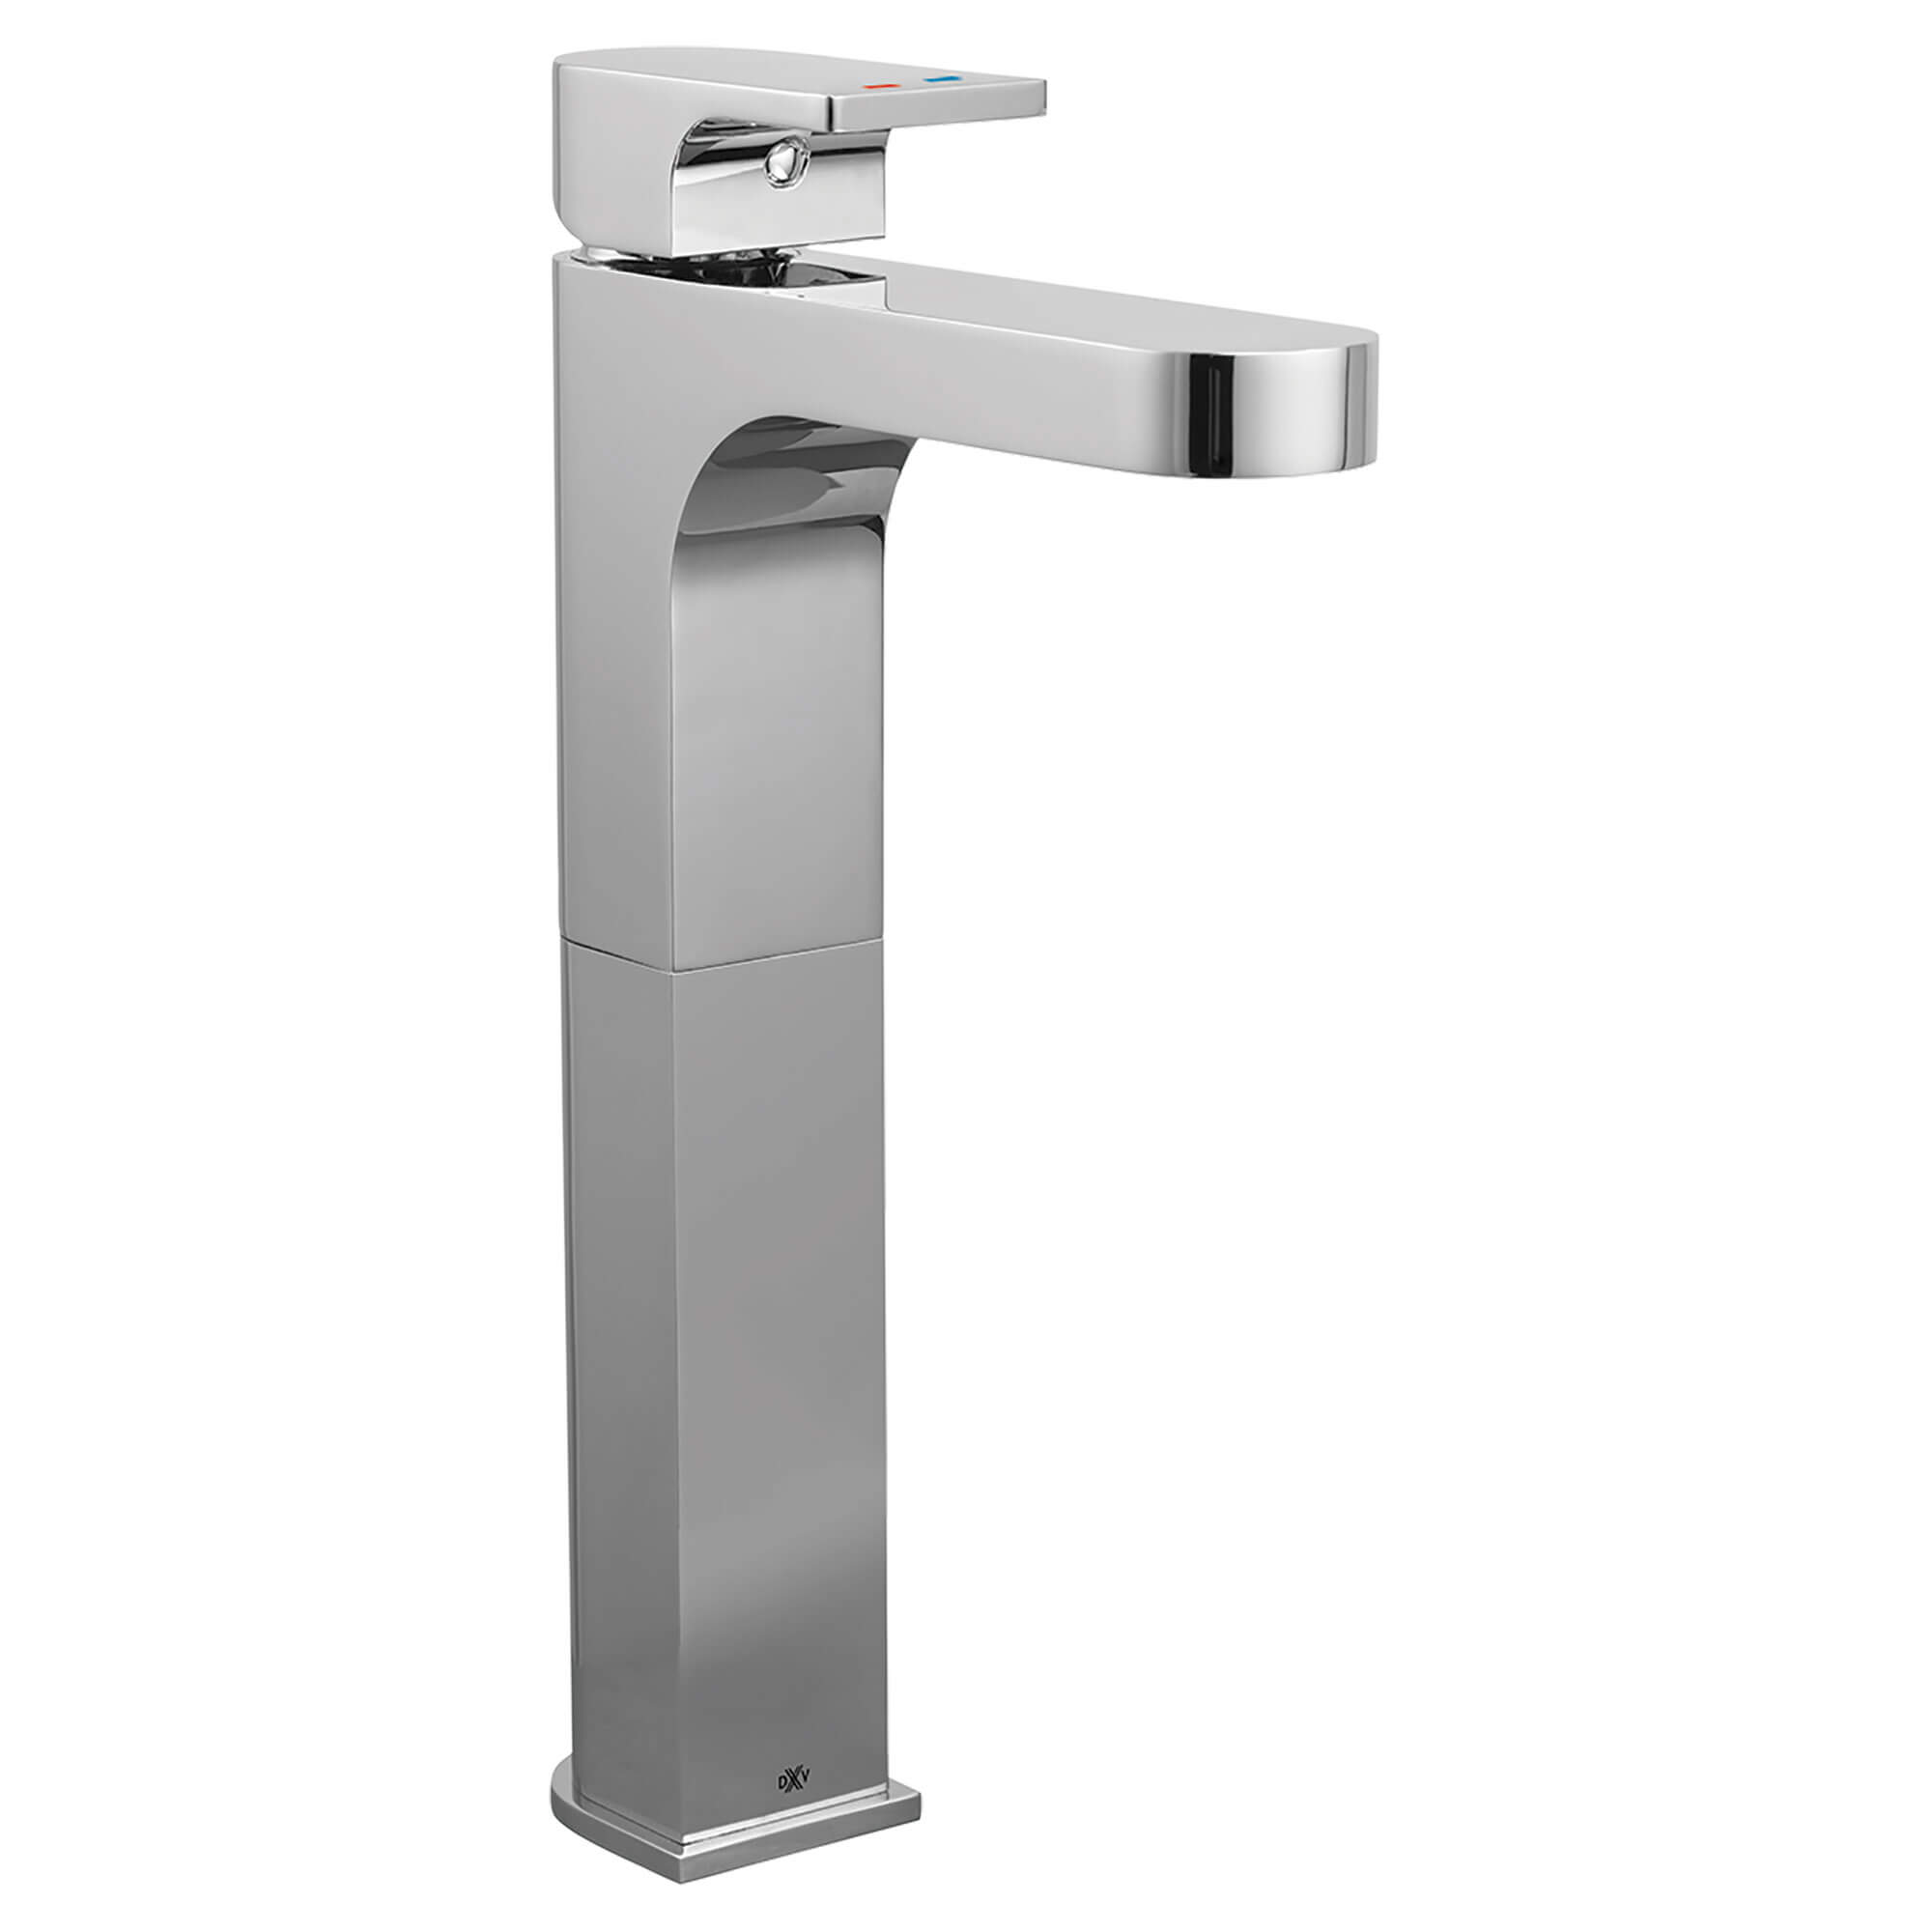 Lyndon vessel sink faucet by DXV